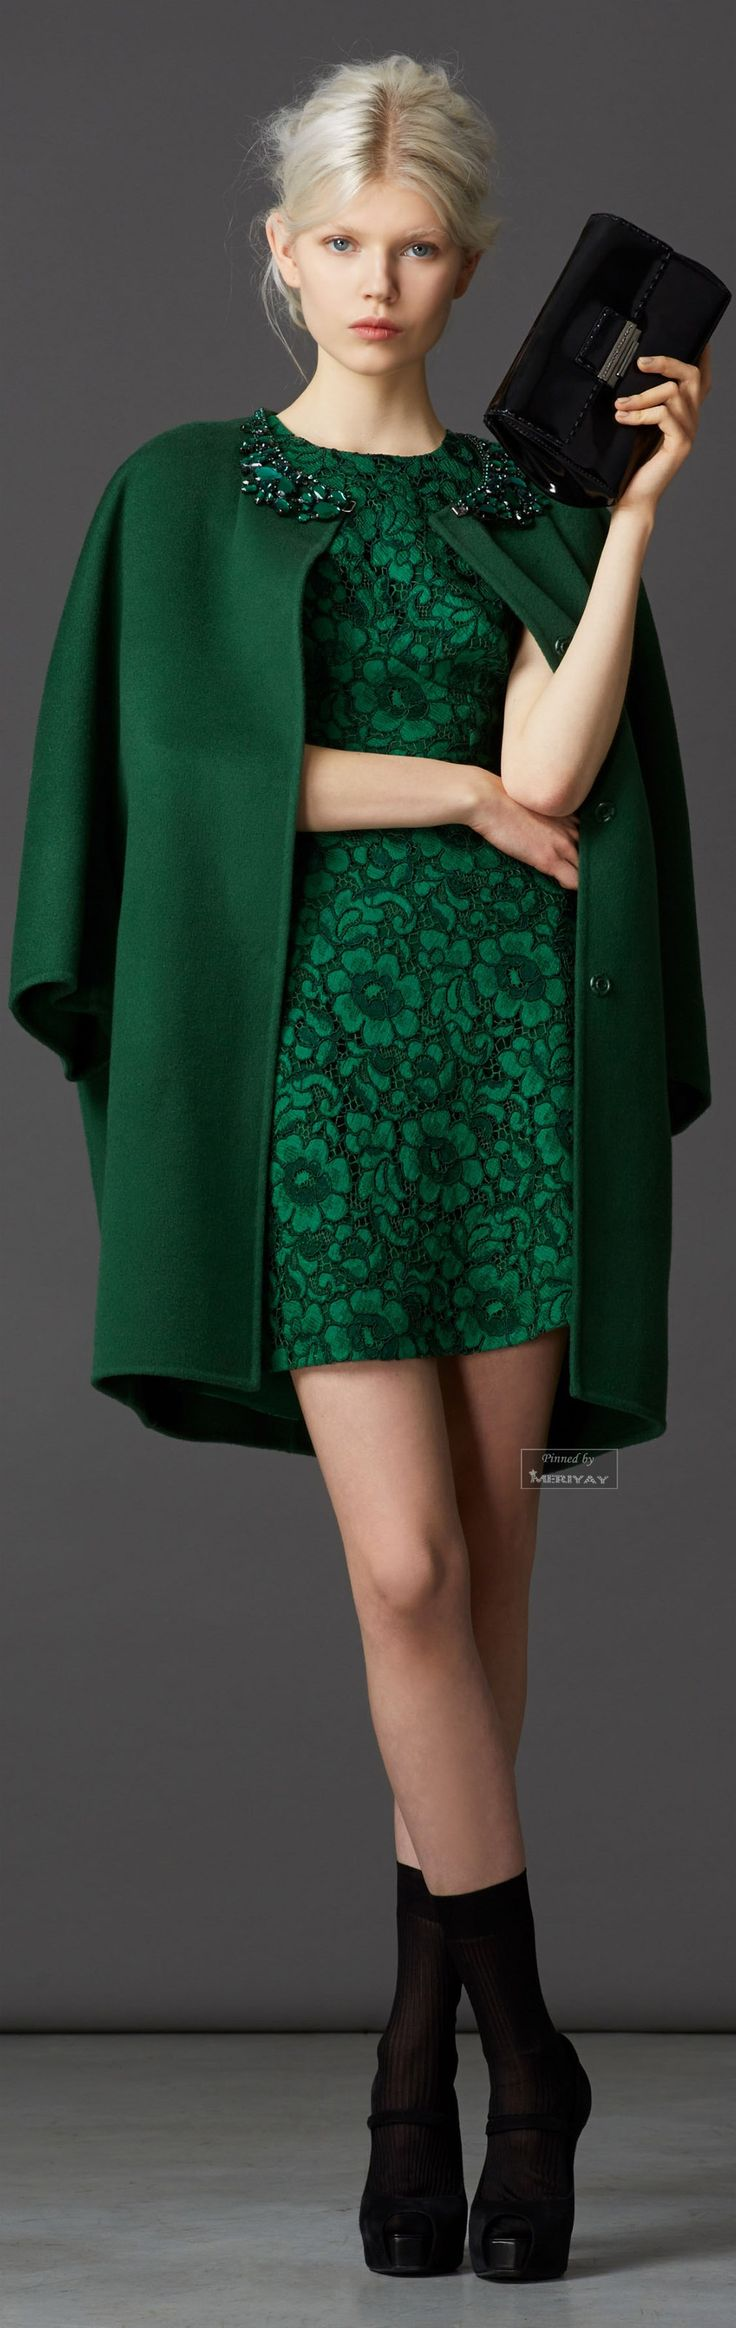 Gorgeous green dress and coat